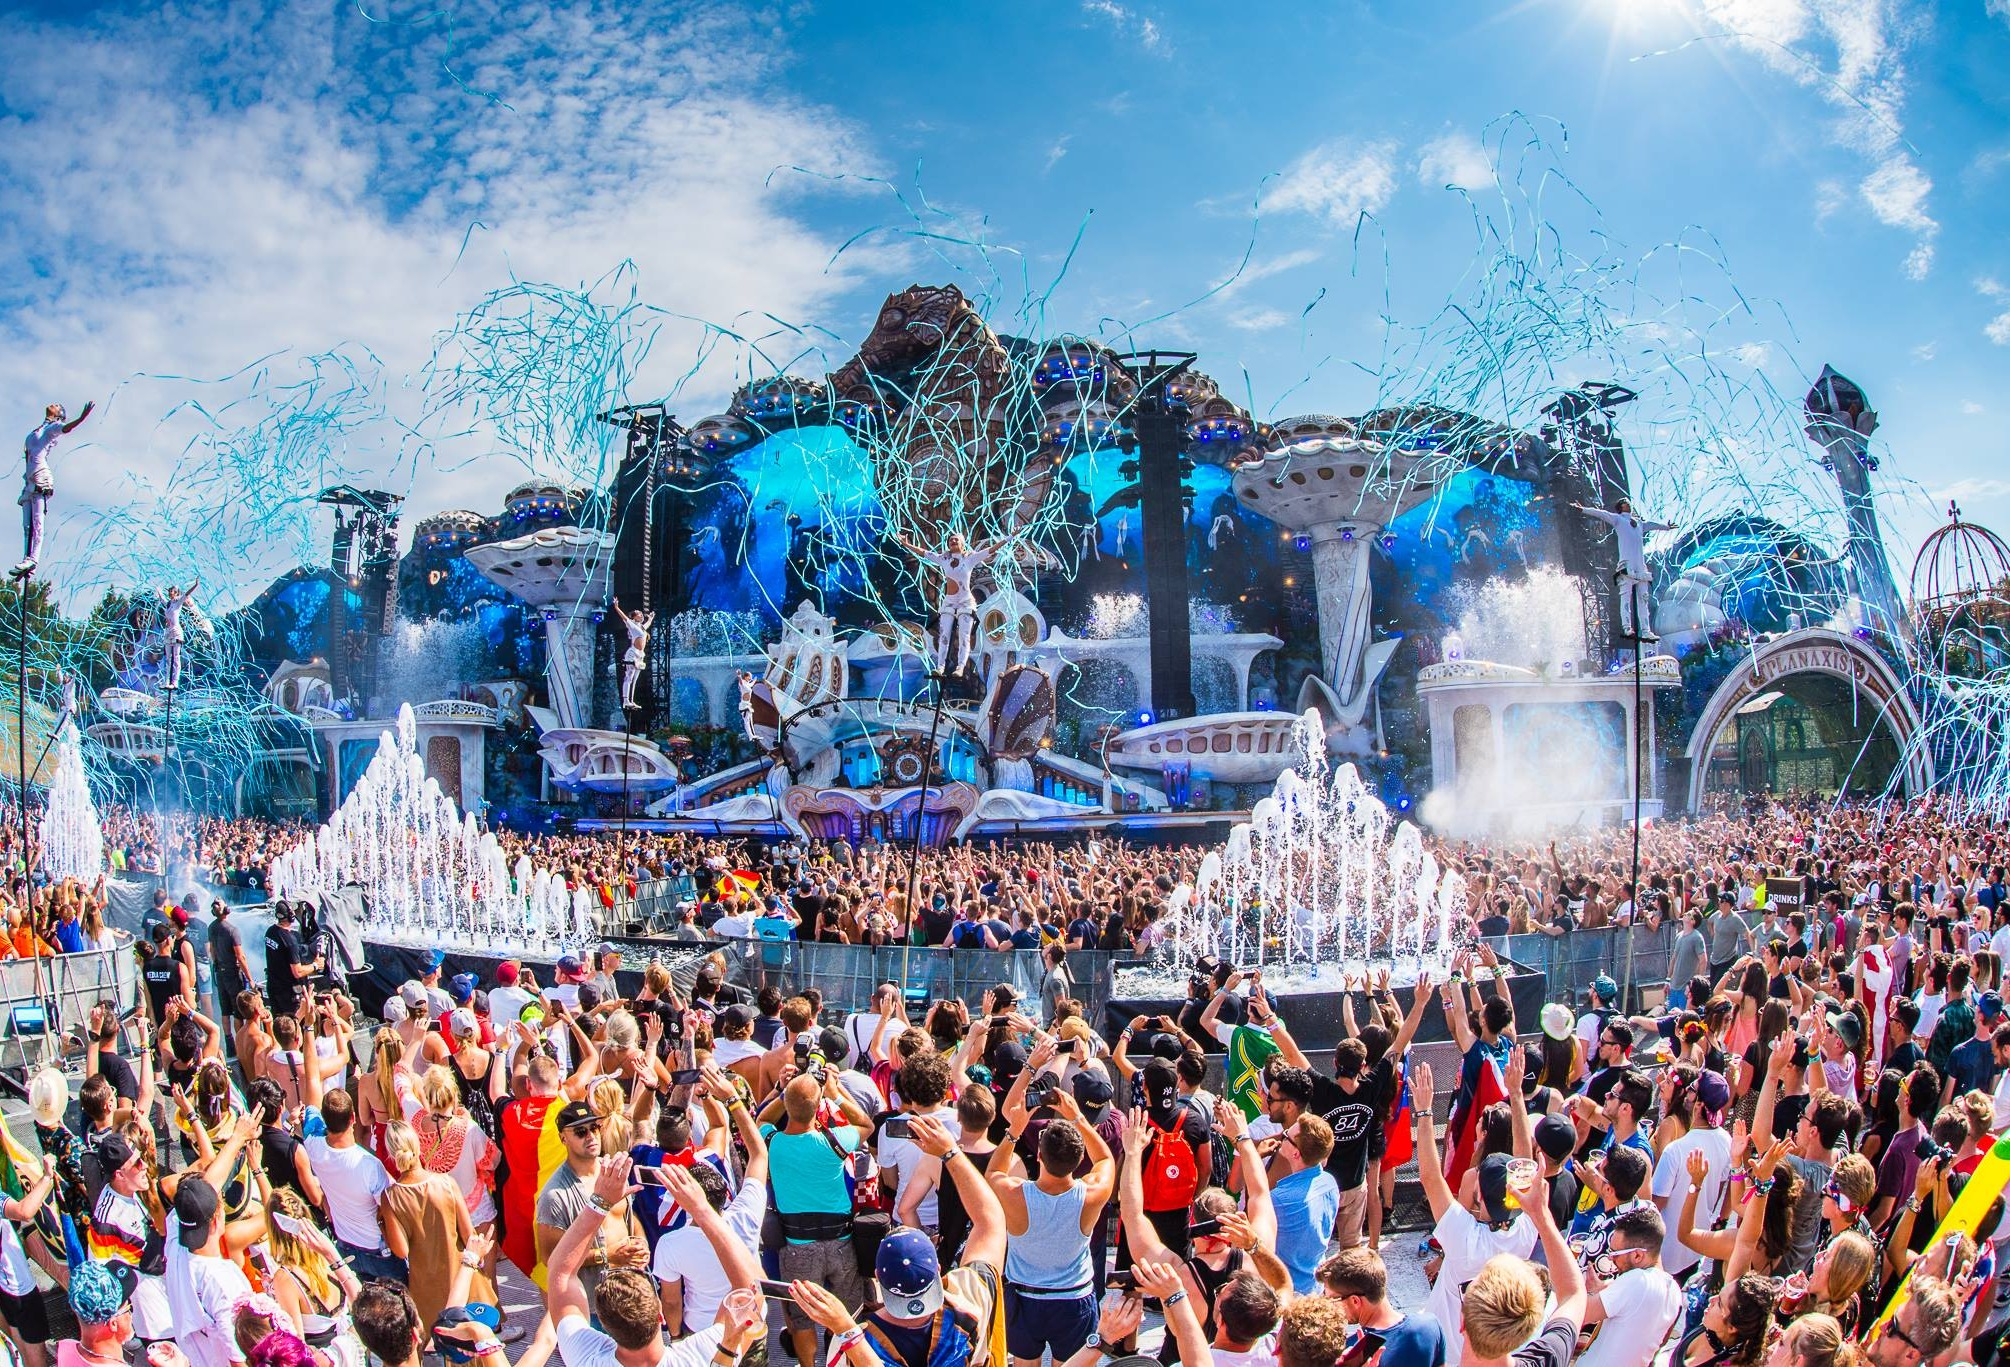 incredible stage decoration at Tomorrowland